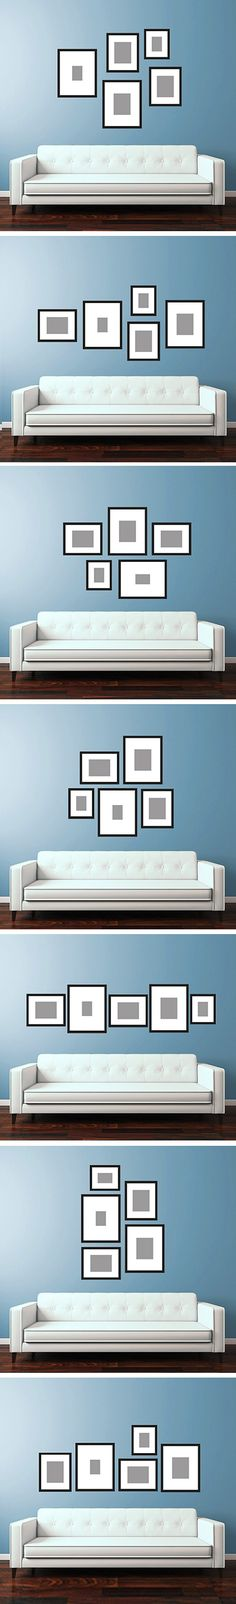 You can do a lot with just 5 frames. And, thanks to our templates (and instant matting), you can go from unopened boxes to everything hanging on the wall in about 10 minutes. Maybe even faster... Chec(Diy Art Gallery)